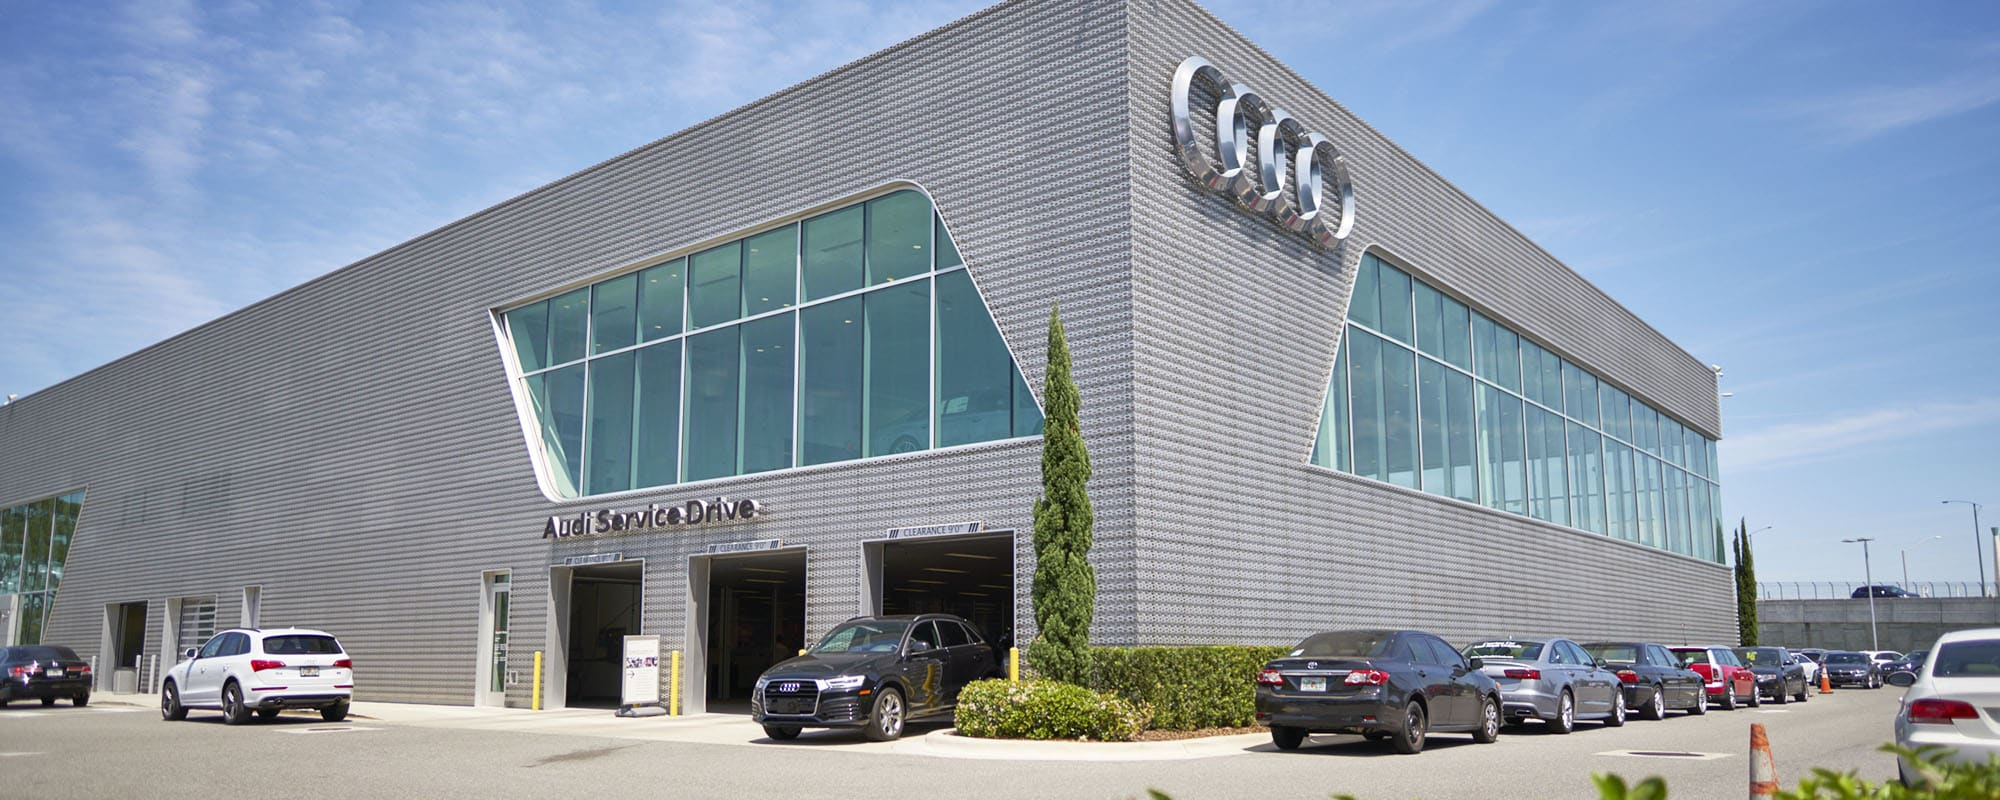 audi service center in orlando, fl | audi south orlando